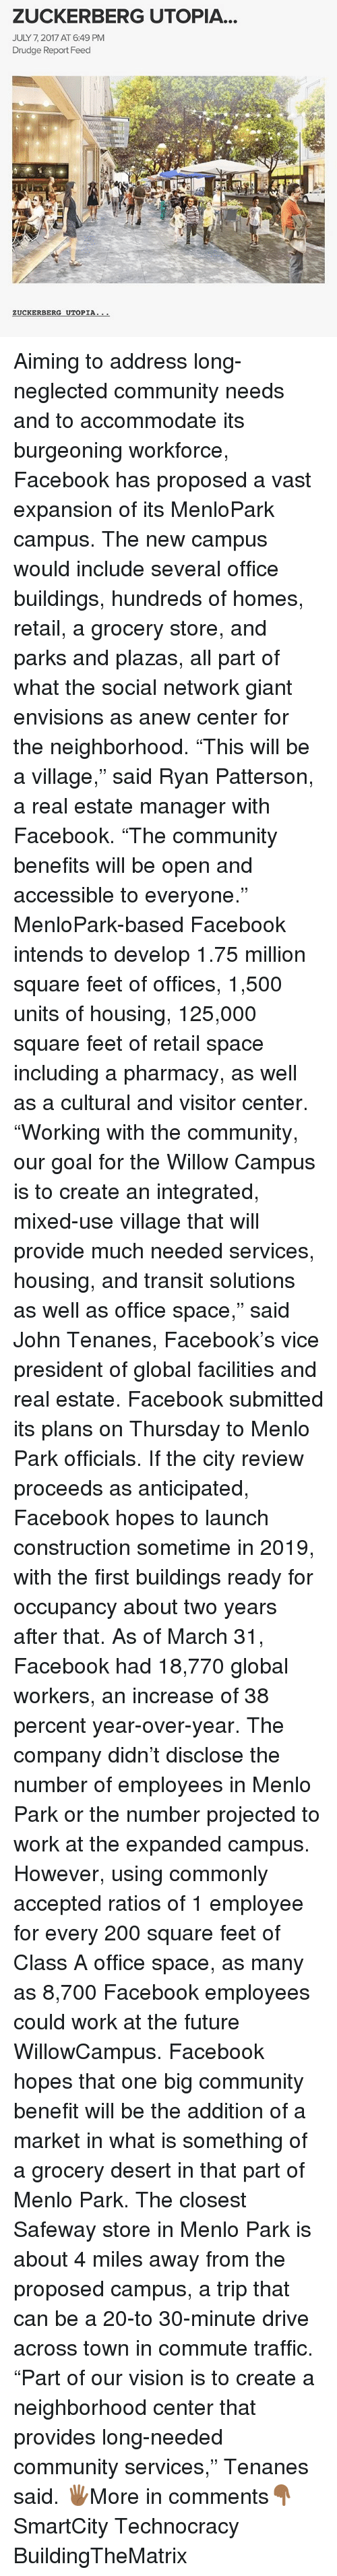 """Bailey Jay, Community, and Facebook: ZUCKERBERG UTOPIA  JULY 7, 2017 AT 6:49 PM  Drudge Report Feed  CKERB  ERG UTOPIA Aiming to address long-neglected community needs and to accommodate its burgeoning workforce, Facebook has proposed a vast expansion of its MenloPark campus. The new campus would include several office buildings, hundreds of homes, retail, a grocery store, and parks and plazas, all part of what the social network giant envisions as anew center for the neighborhood. """"This will be a village,"""" said Ryan Patterson, a real estate manager with Facebook. """"The community benefits will be open and accessible to everyone."""" MenloPark-based Facebook intends to develop 1.75 million square feet of offices, 1,500 units of housing, 125,000 square feet of retail space including a pharmacy, as well as a cultural and visitor center. """"Working with the community, our goal for the Willow Campus is to create an integrated, mixed-use village that will provide much needed services, housing, and transit solutions as well as office space,"""" said John Tenanes, Facebook's vice president of global facilities and real estate. Facebook submitted its plans on Thursday to Menlo Park officials. If the city review proceeds as anticipated, Facebook hopes to launch construction sometime in 2019, with the first buildings ready for occupancy about two years after that. As of March 31, Facebook had 18,770 global workers, an increase of 38 percent year-over-year. The company didn't disclose the number of employees in Menlo Park or the number projected to work at the expanded campus. However, using commonly accepted ratios of 1 employee for every 200 square feet of Class A office space, as many as 8,700 Facebook employees could work at the future WillowCampus. Facebook hopes that one big community benefit will be the addition of a market in what is something of a grocery desert in that part of Menlo Park. The closest Safeway store in Menlo Park is about 4 miles away from the proposed campus, a"""